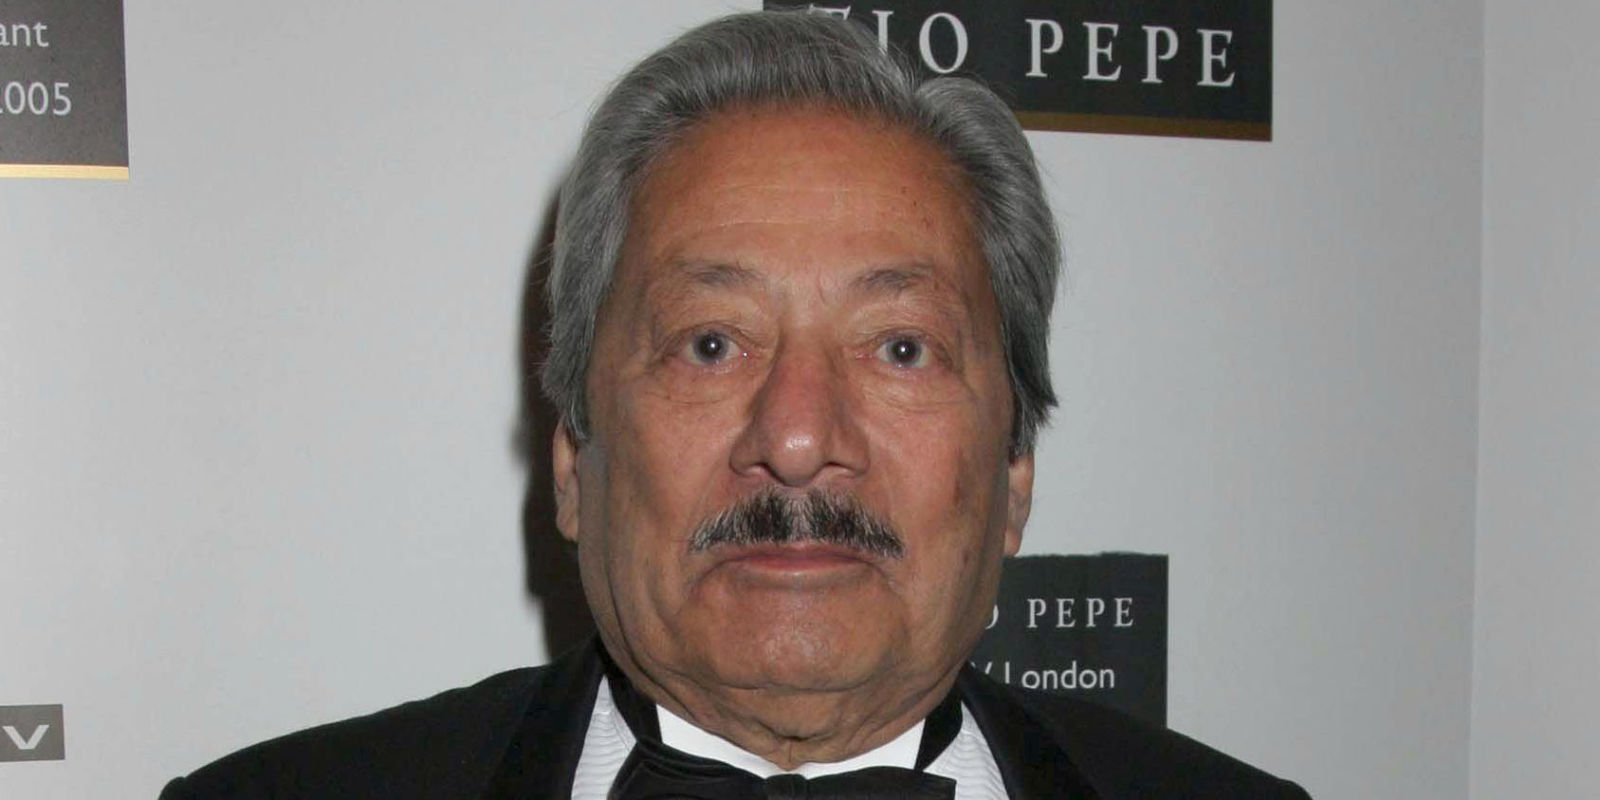 saeed jaffrey wikipediasaeed jaffrey age, saeed jaffrey actor death, saeed jaffrey biography, saeed jaffrey actor, saeed jaffrey wikipedia, saeed jaffrey 2015, saeed jaffrey funeral, saeed jaffrey movies list, saeed jaffrey married, saeed jaffrey net worth, saeed jaffrey died, saeed jaffrey autobiography, saeed jaffrey imdb, saeed jaffrey first wife